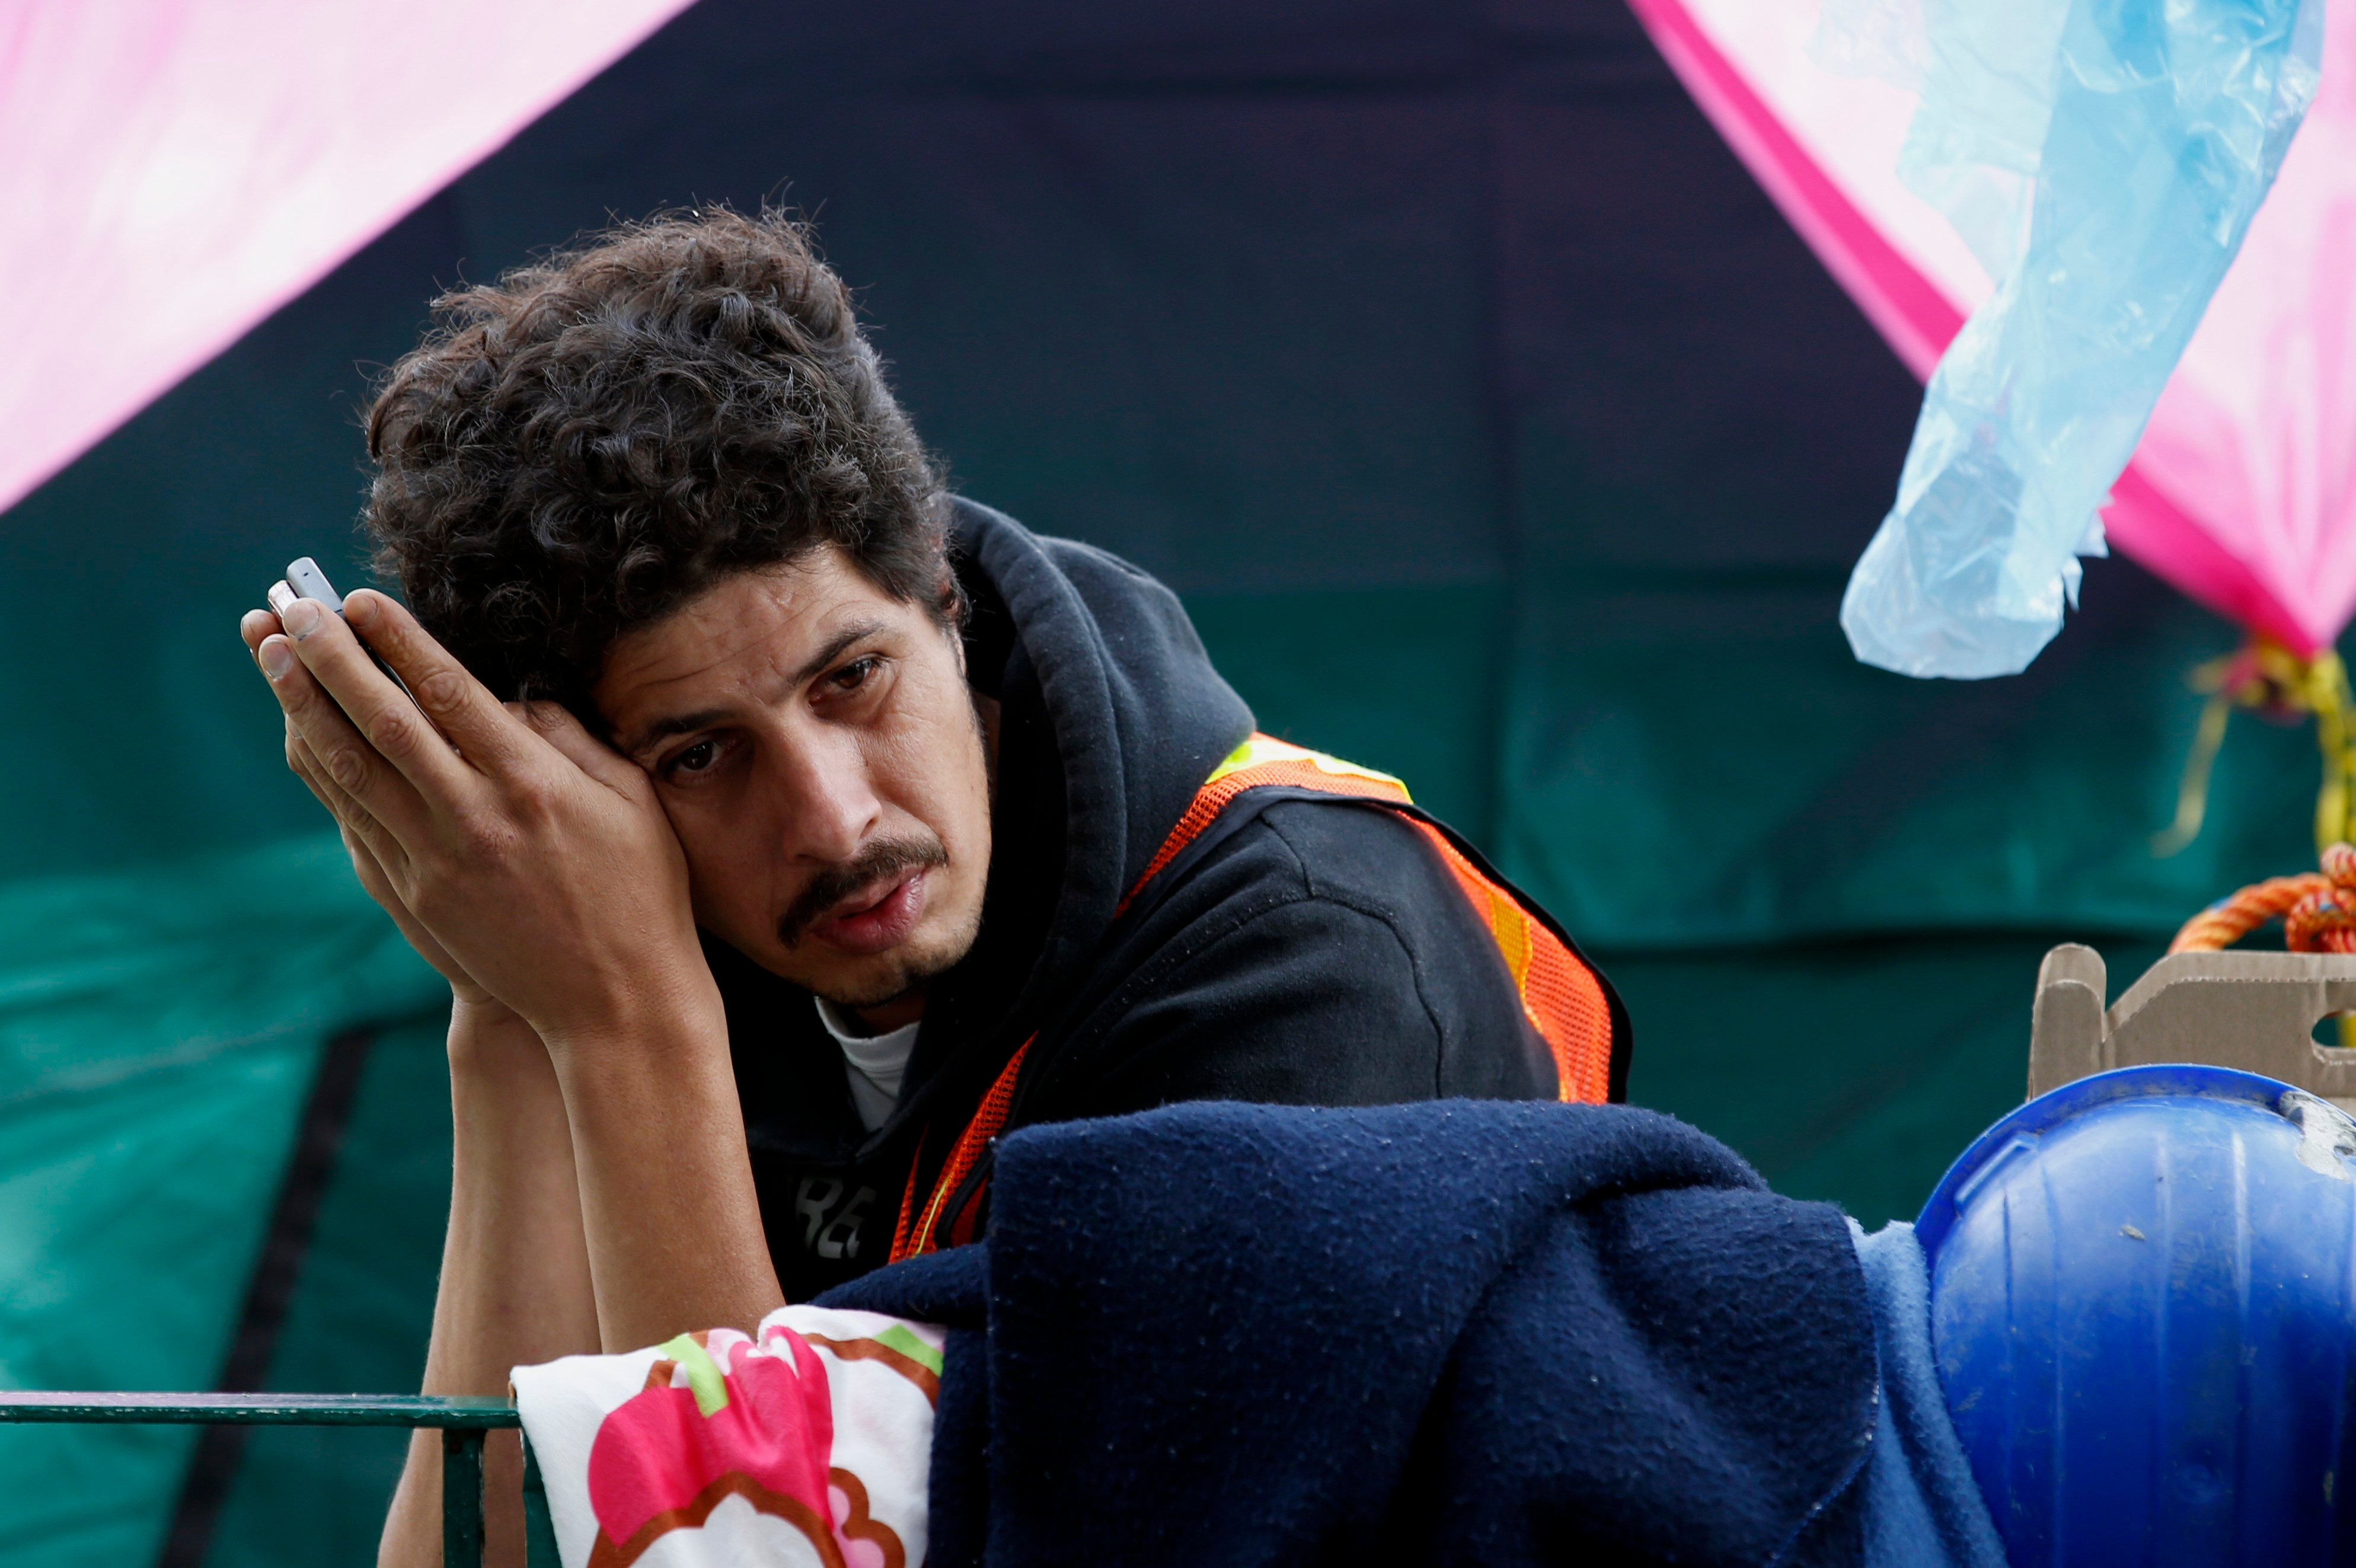 Pablo Vega Rodríguez listens to his mobile as he waits for news on his cousin Paulino Estrada, at an ad-hoc camp outside a quake-collapsed seven-story building where Estrada is believed to be trapped, in Mexico City's Roma Norte neighborhood, Friday, Sept